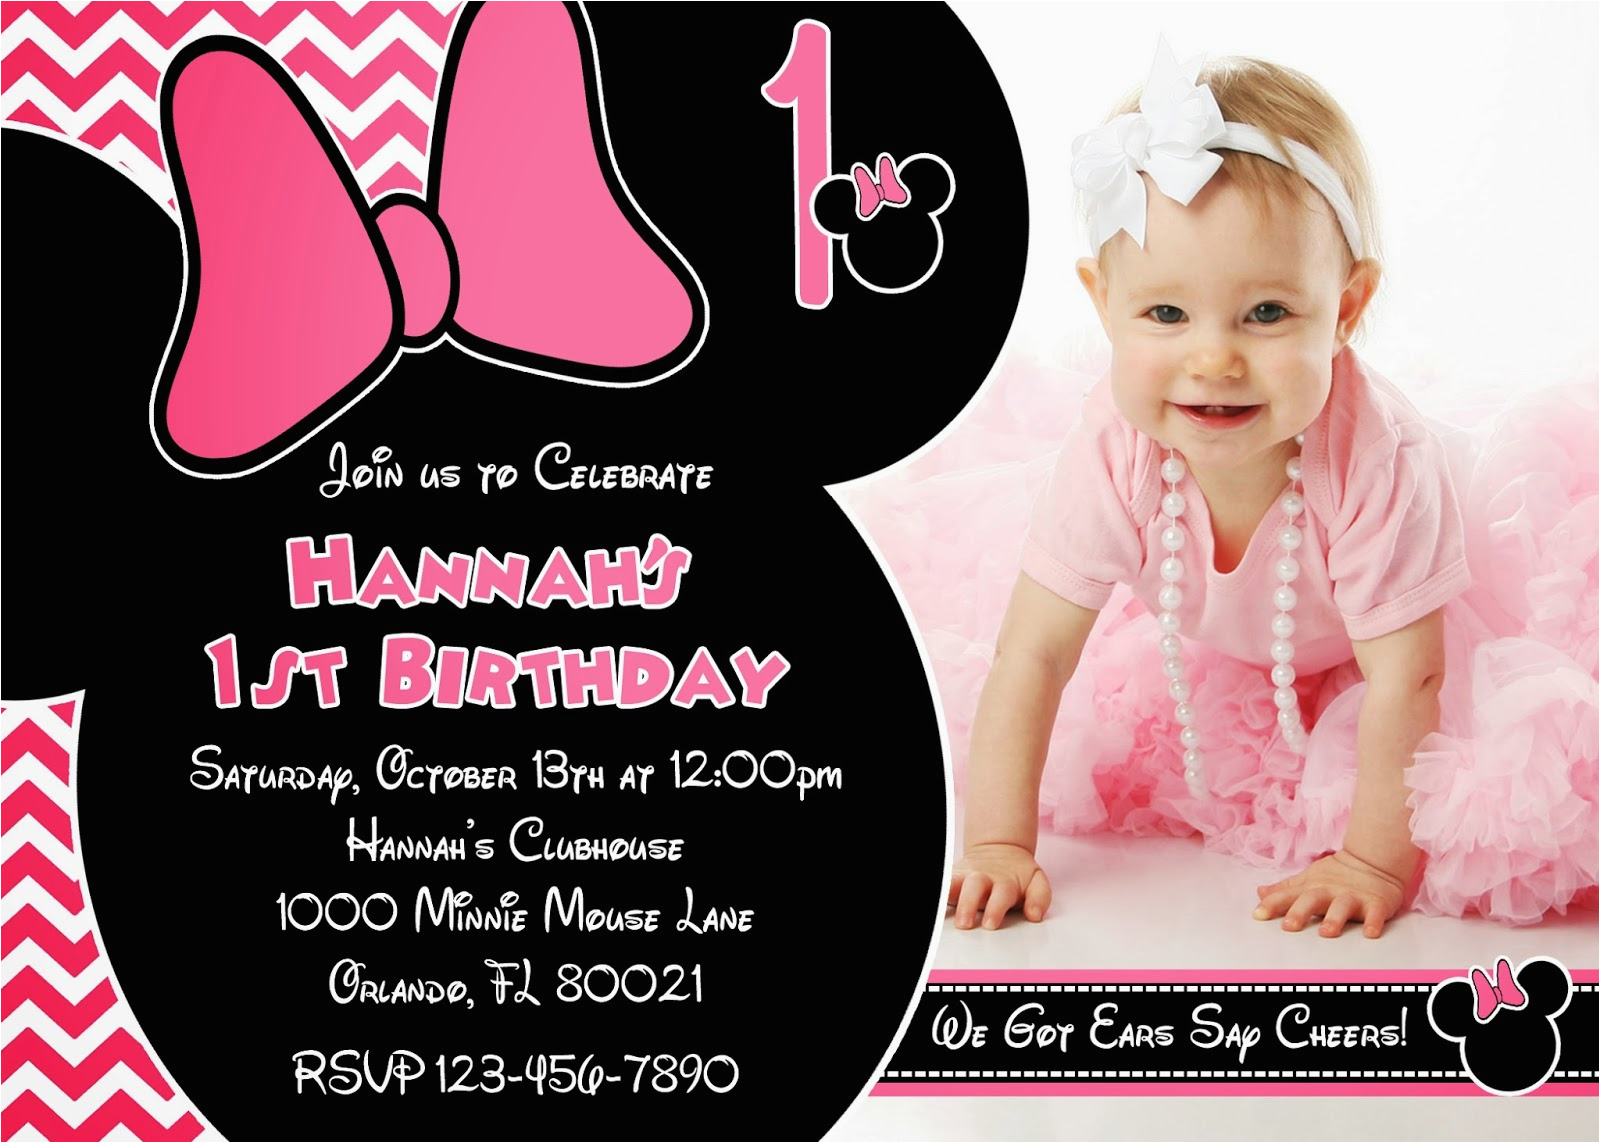 Invitation For One Year Old Birthday Party Invitations Oxsvitation Com